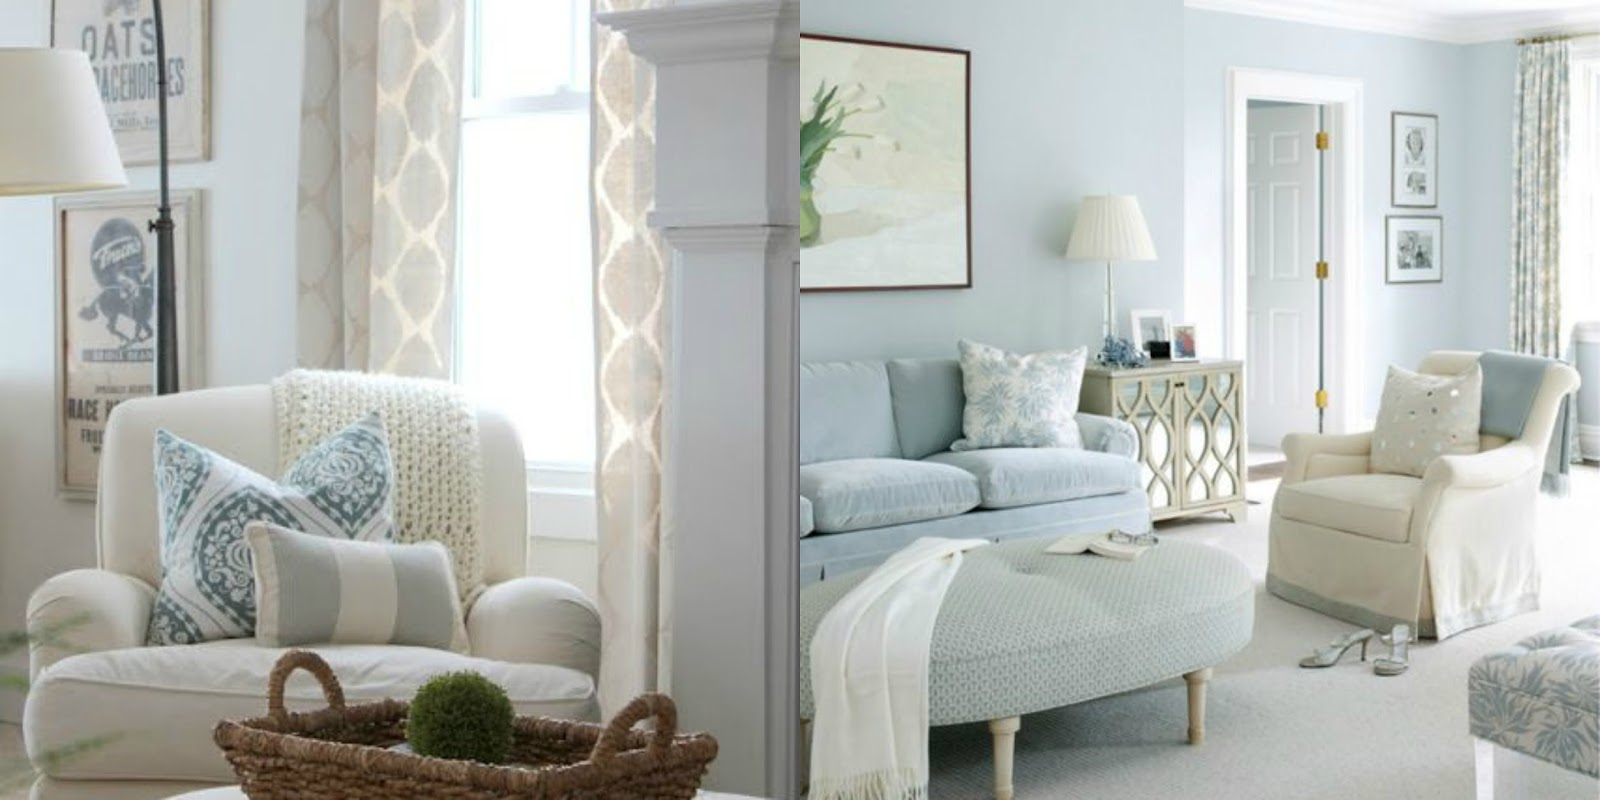 Just Look As These Beautiful Duck Egg Inspired Bedrooms The Use Of White With Hint Blue Is So Calming And Fresh